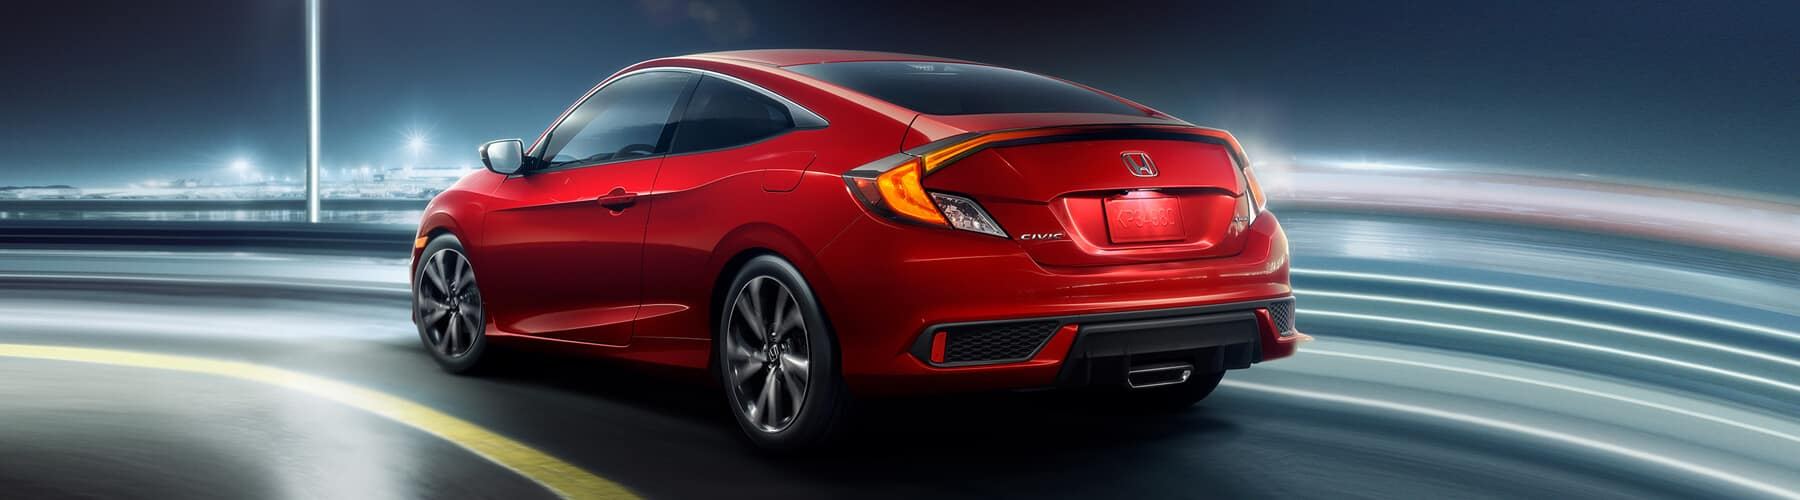 2020 Honda Civic Coupe Slider